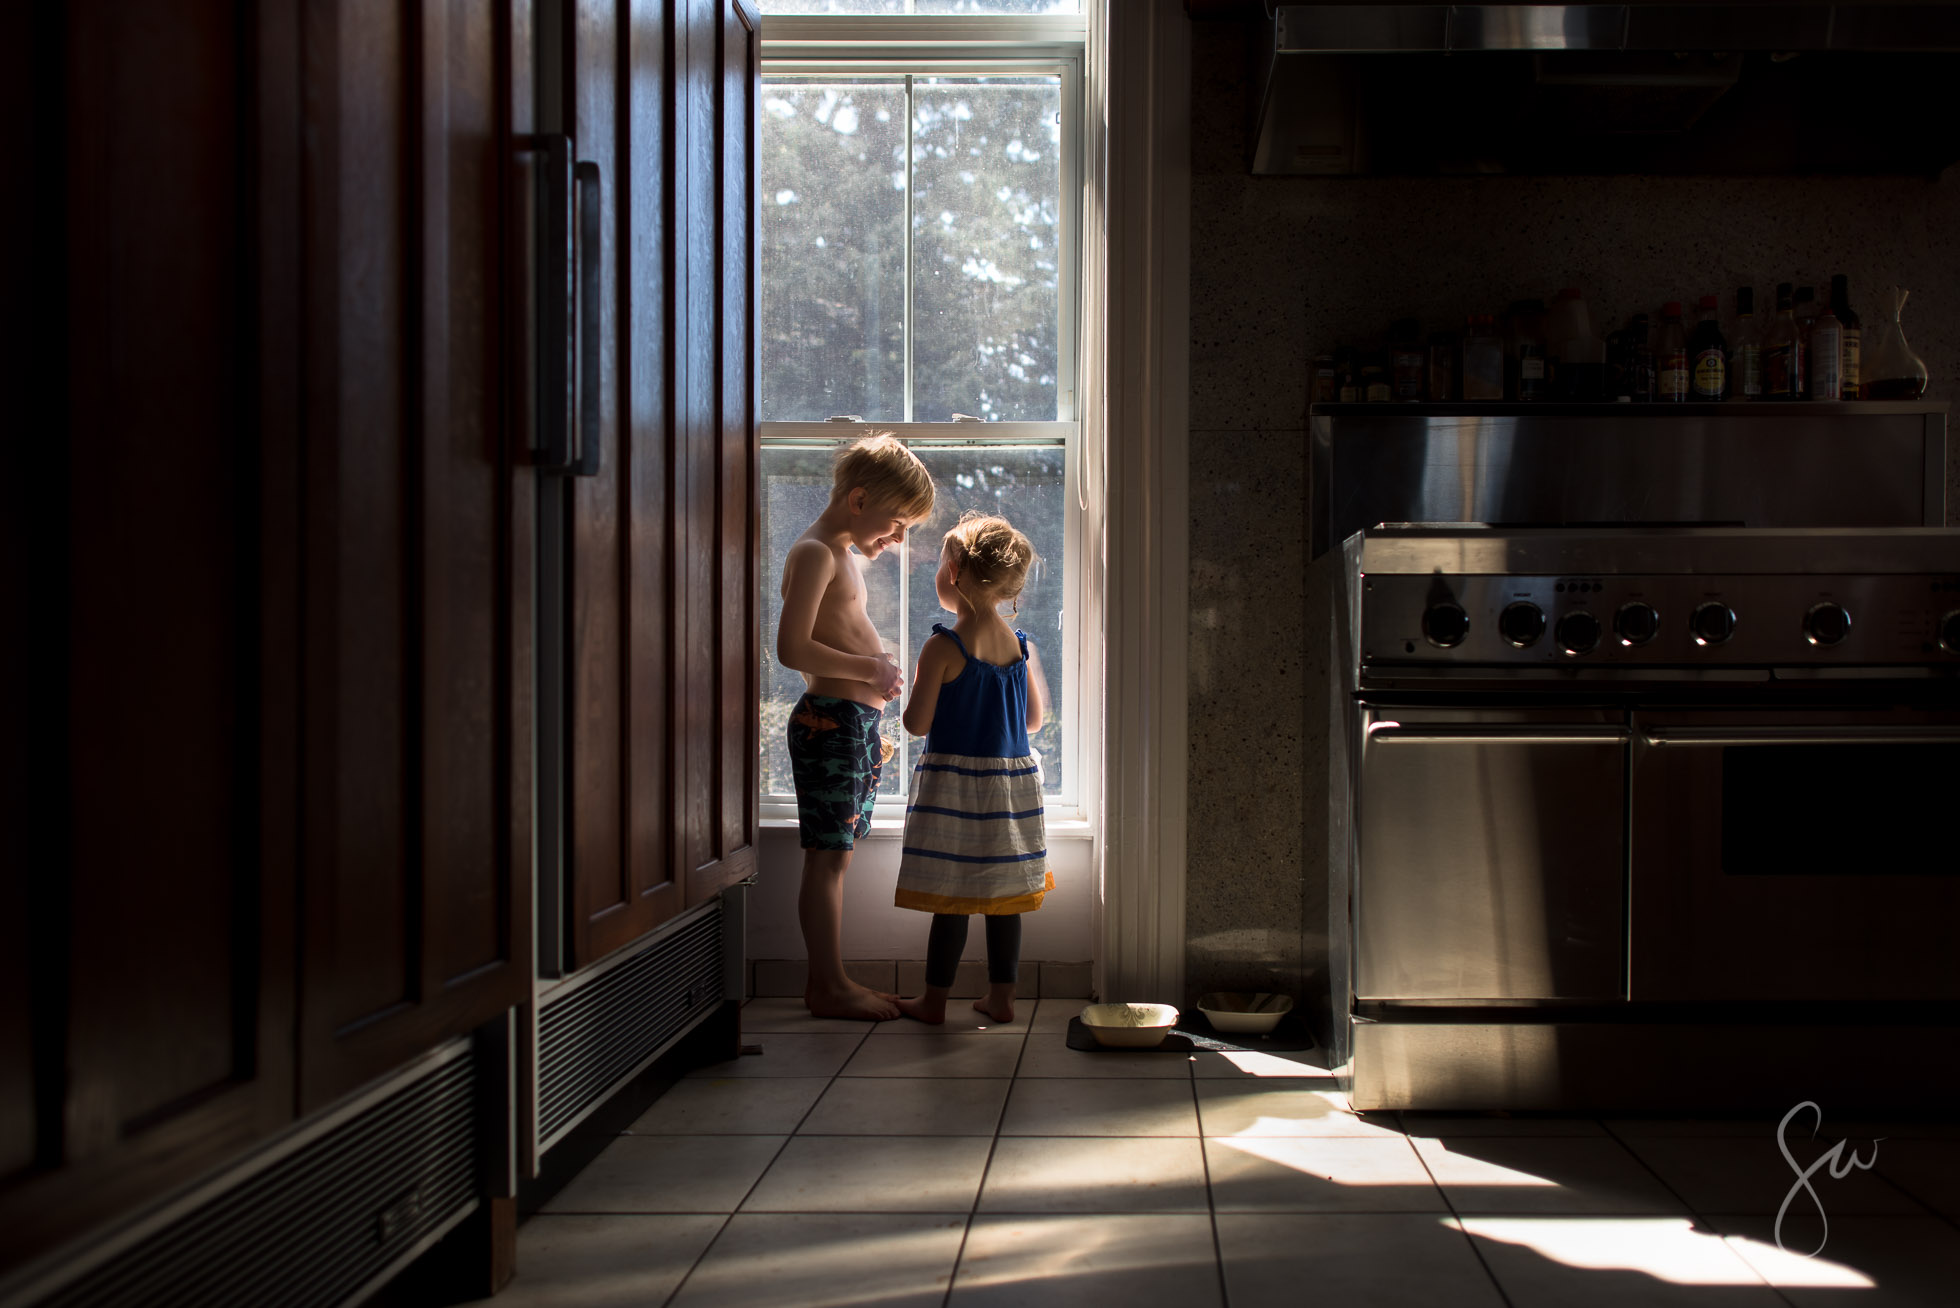 Everyday-Life-Natural-Light-Family-and-Home-Photography-of-Brother-and-Sister-by-Photographer-Sarah-Wilkerson-